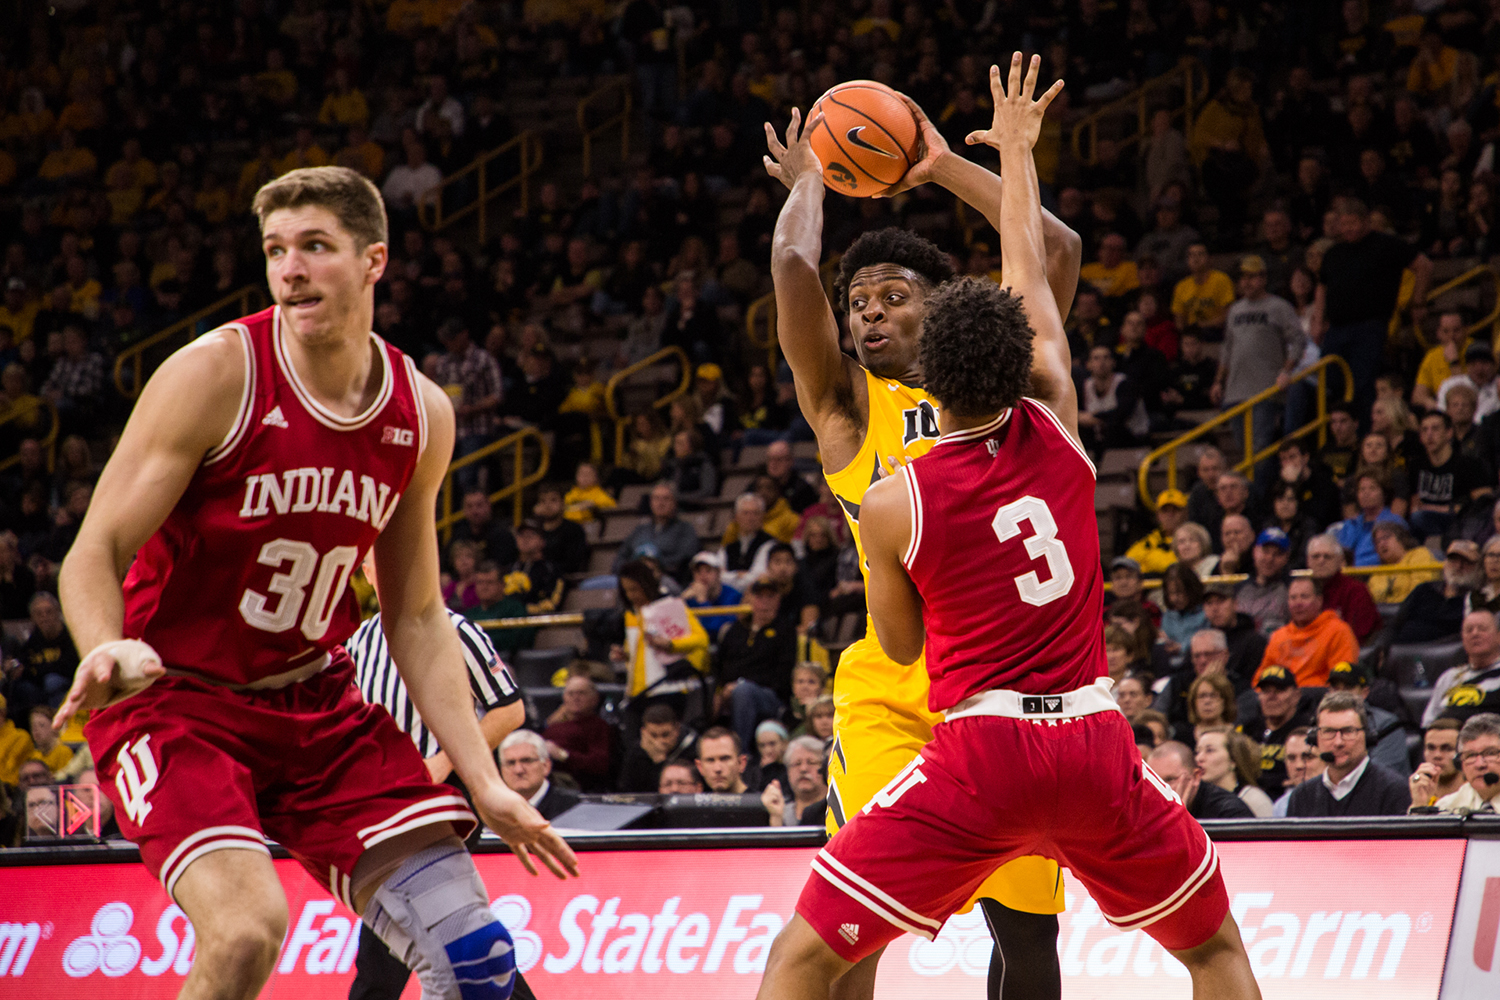 Iowa forward Tyler Cook looks to pass the ball against Indiana University at Carver-Hawkeye Arena on Saturday, Feb. 17, 2018. The Hoosiers defeated the Hawkeyes 84 to 82.